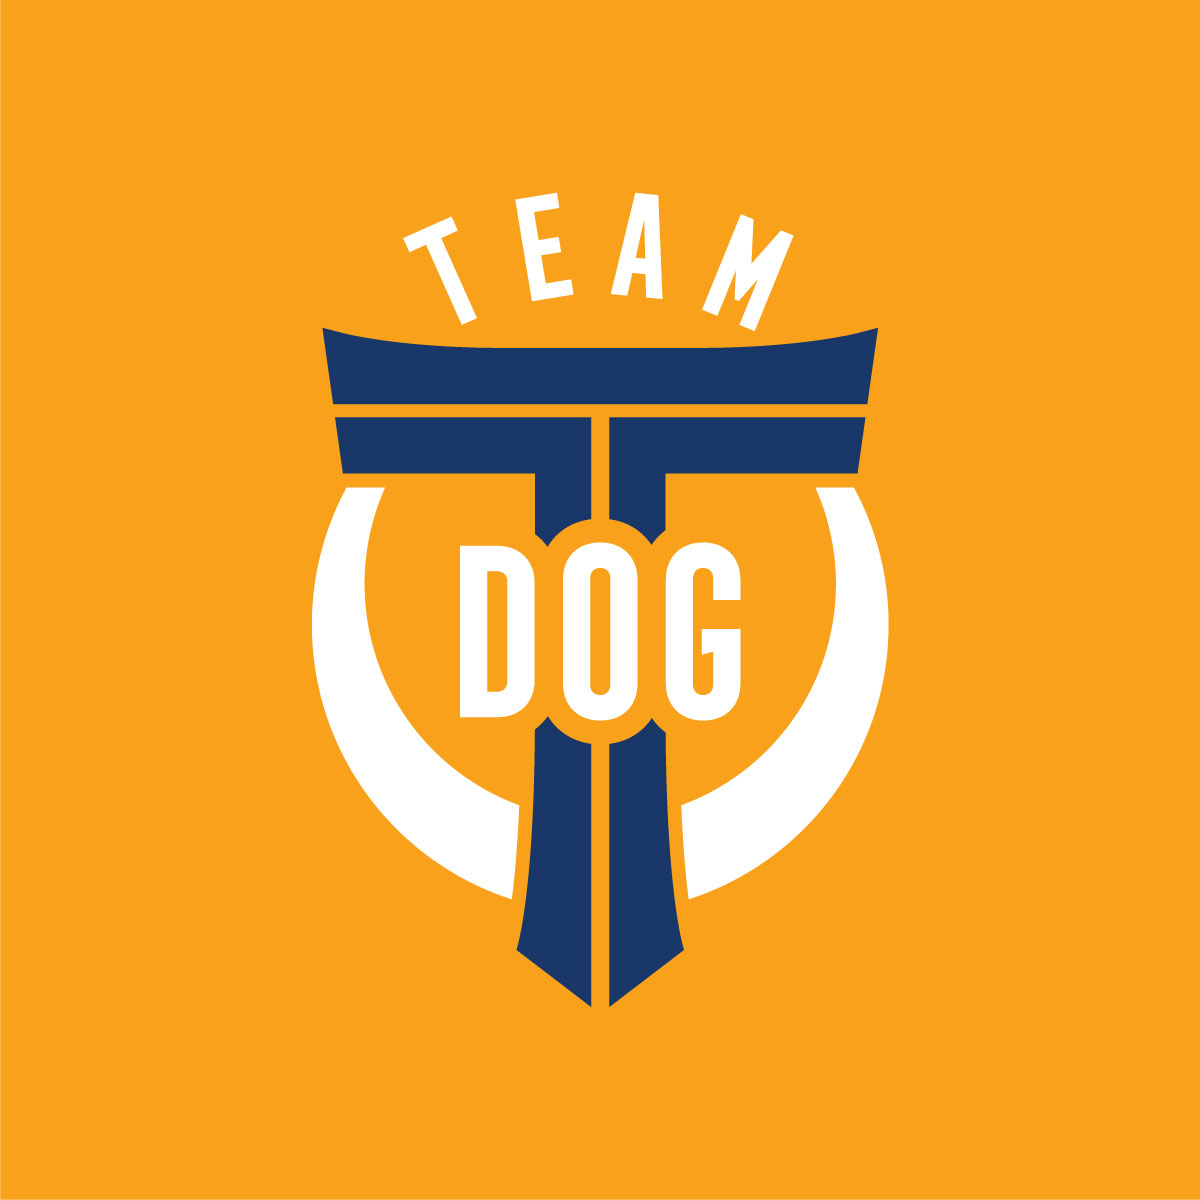 Team T-Dog, Tsuneari Yahiro, Logo Blue-White